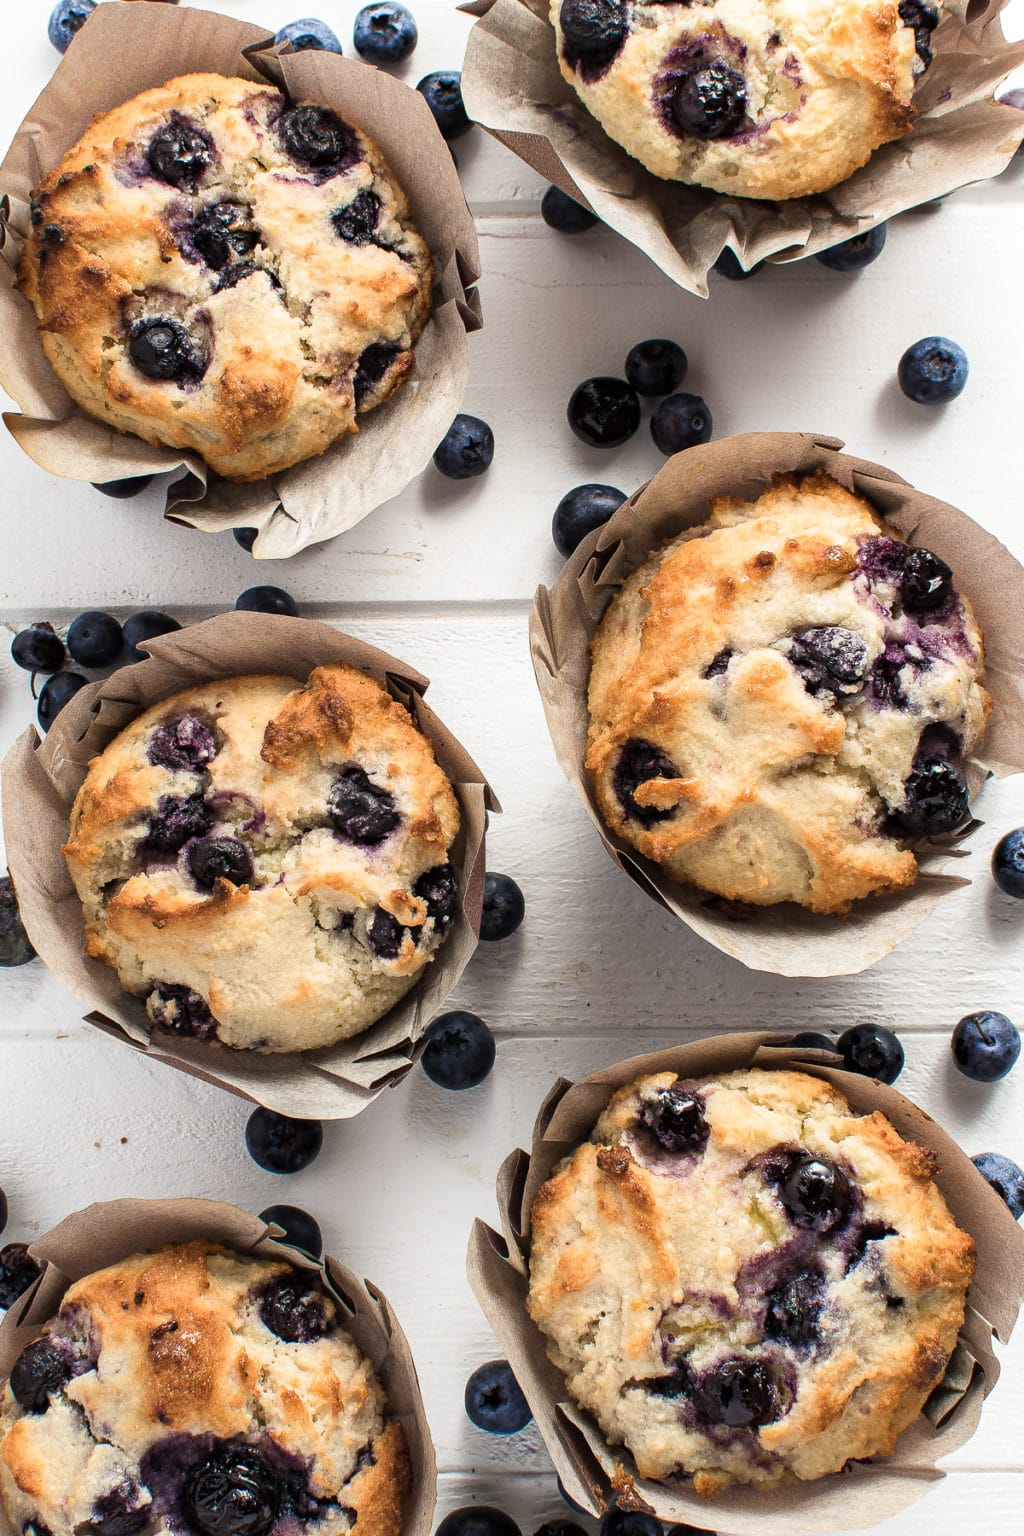 Blueberry muffins on a bright white wooden background with scattered fresh blueberries